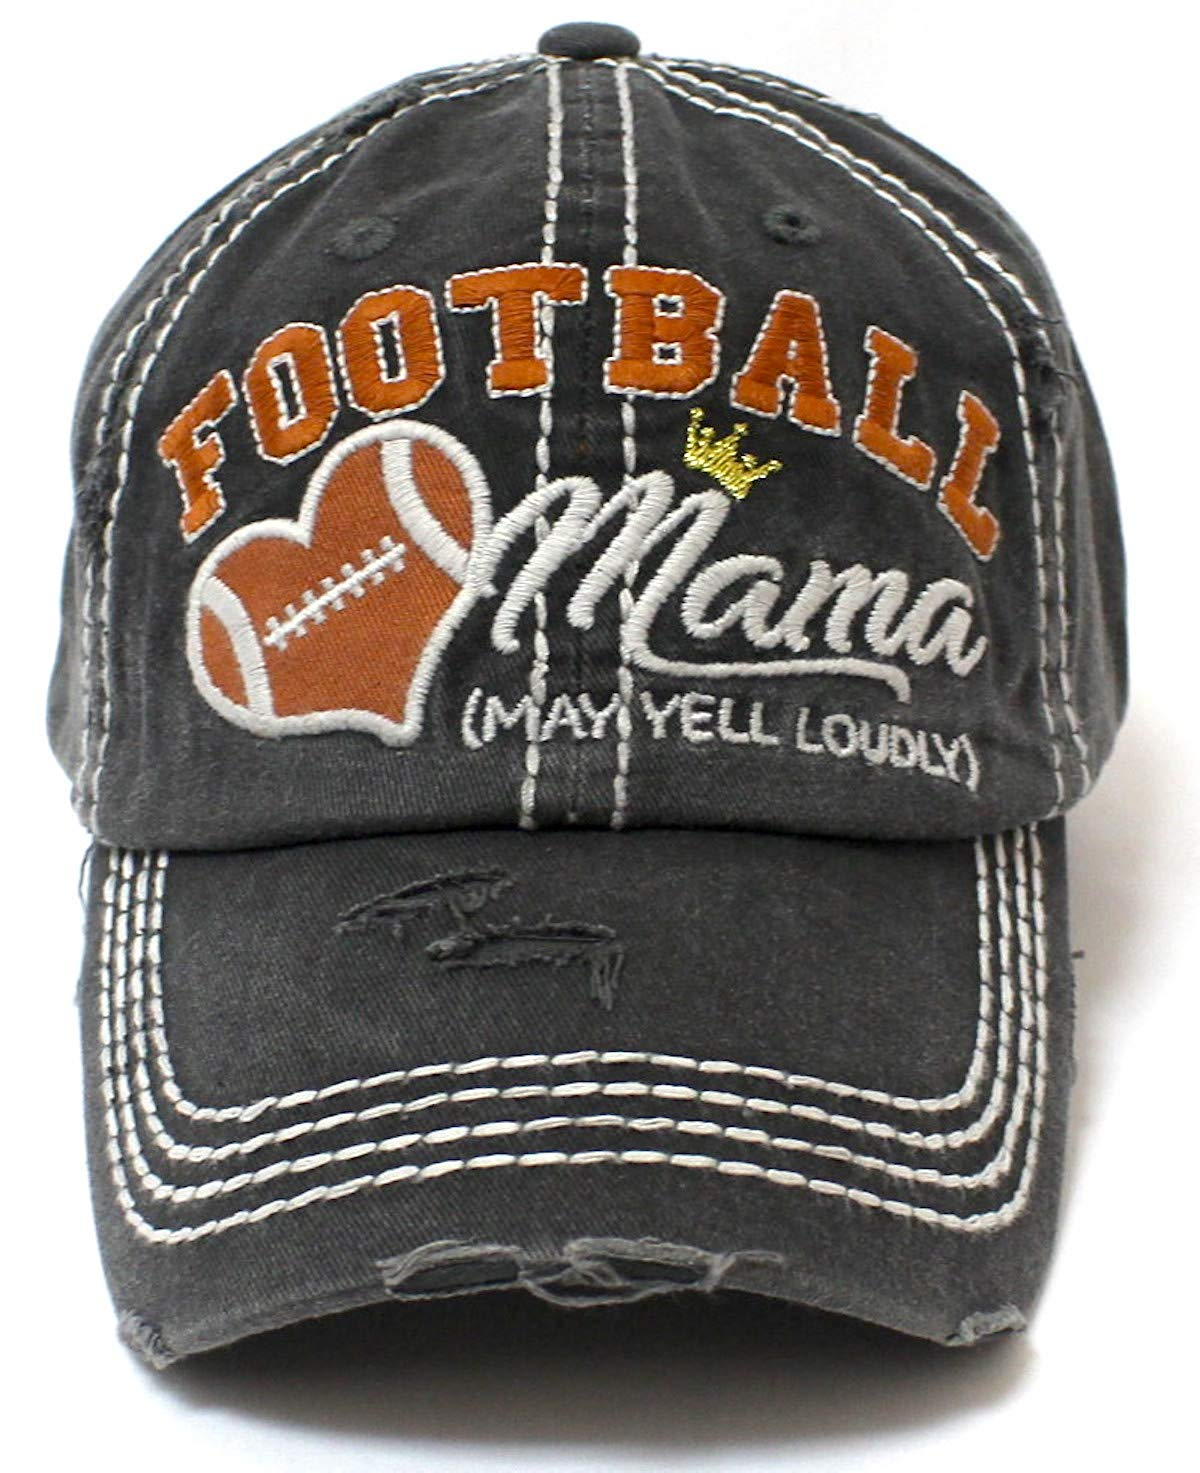 CAPS 'N VINTAGE Charcoal Gray Football Mama Cheer Queen Hat - Caps 'N Vintage